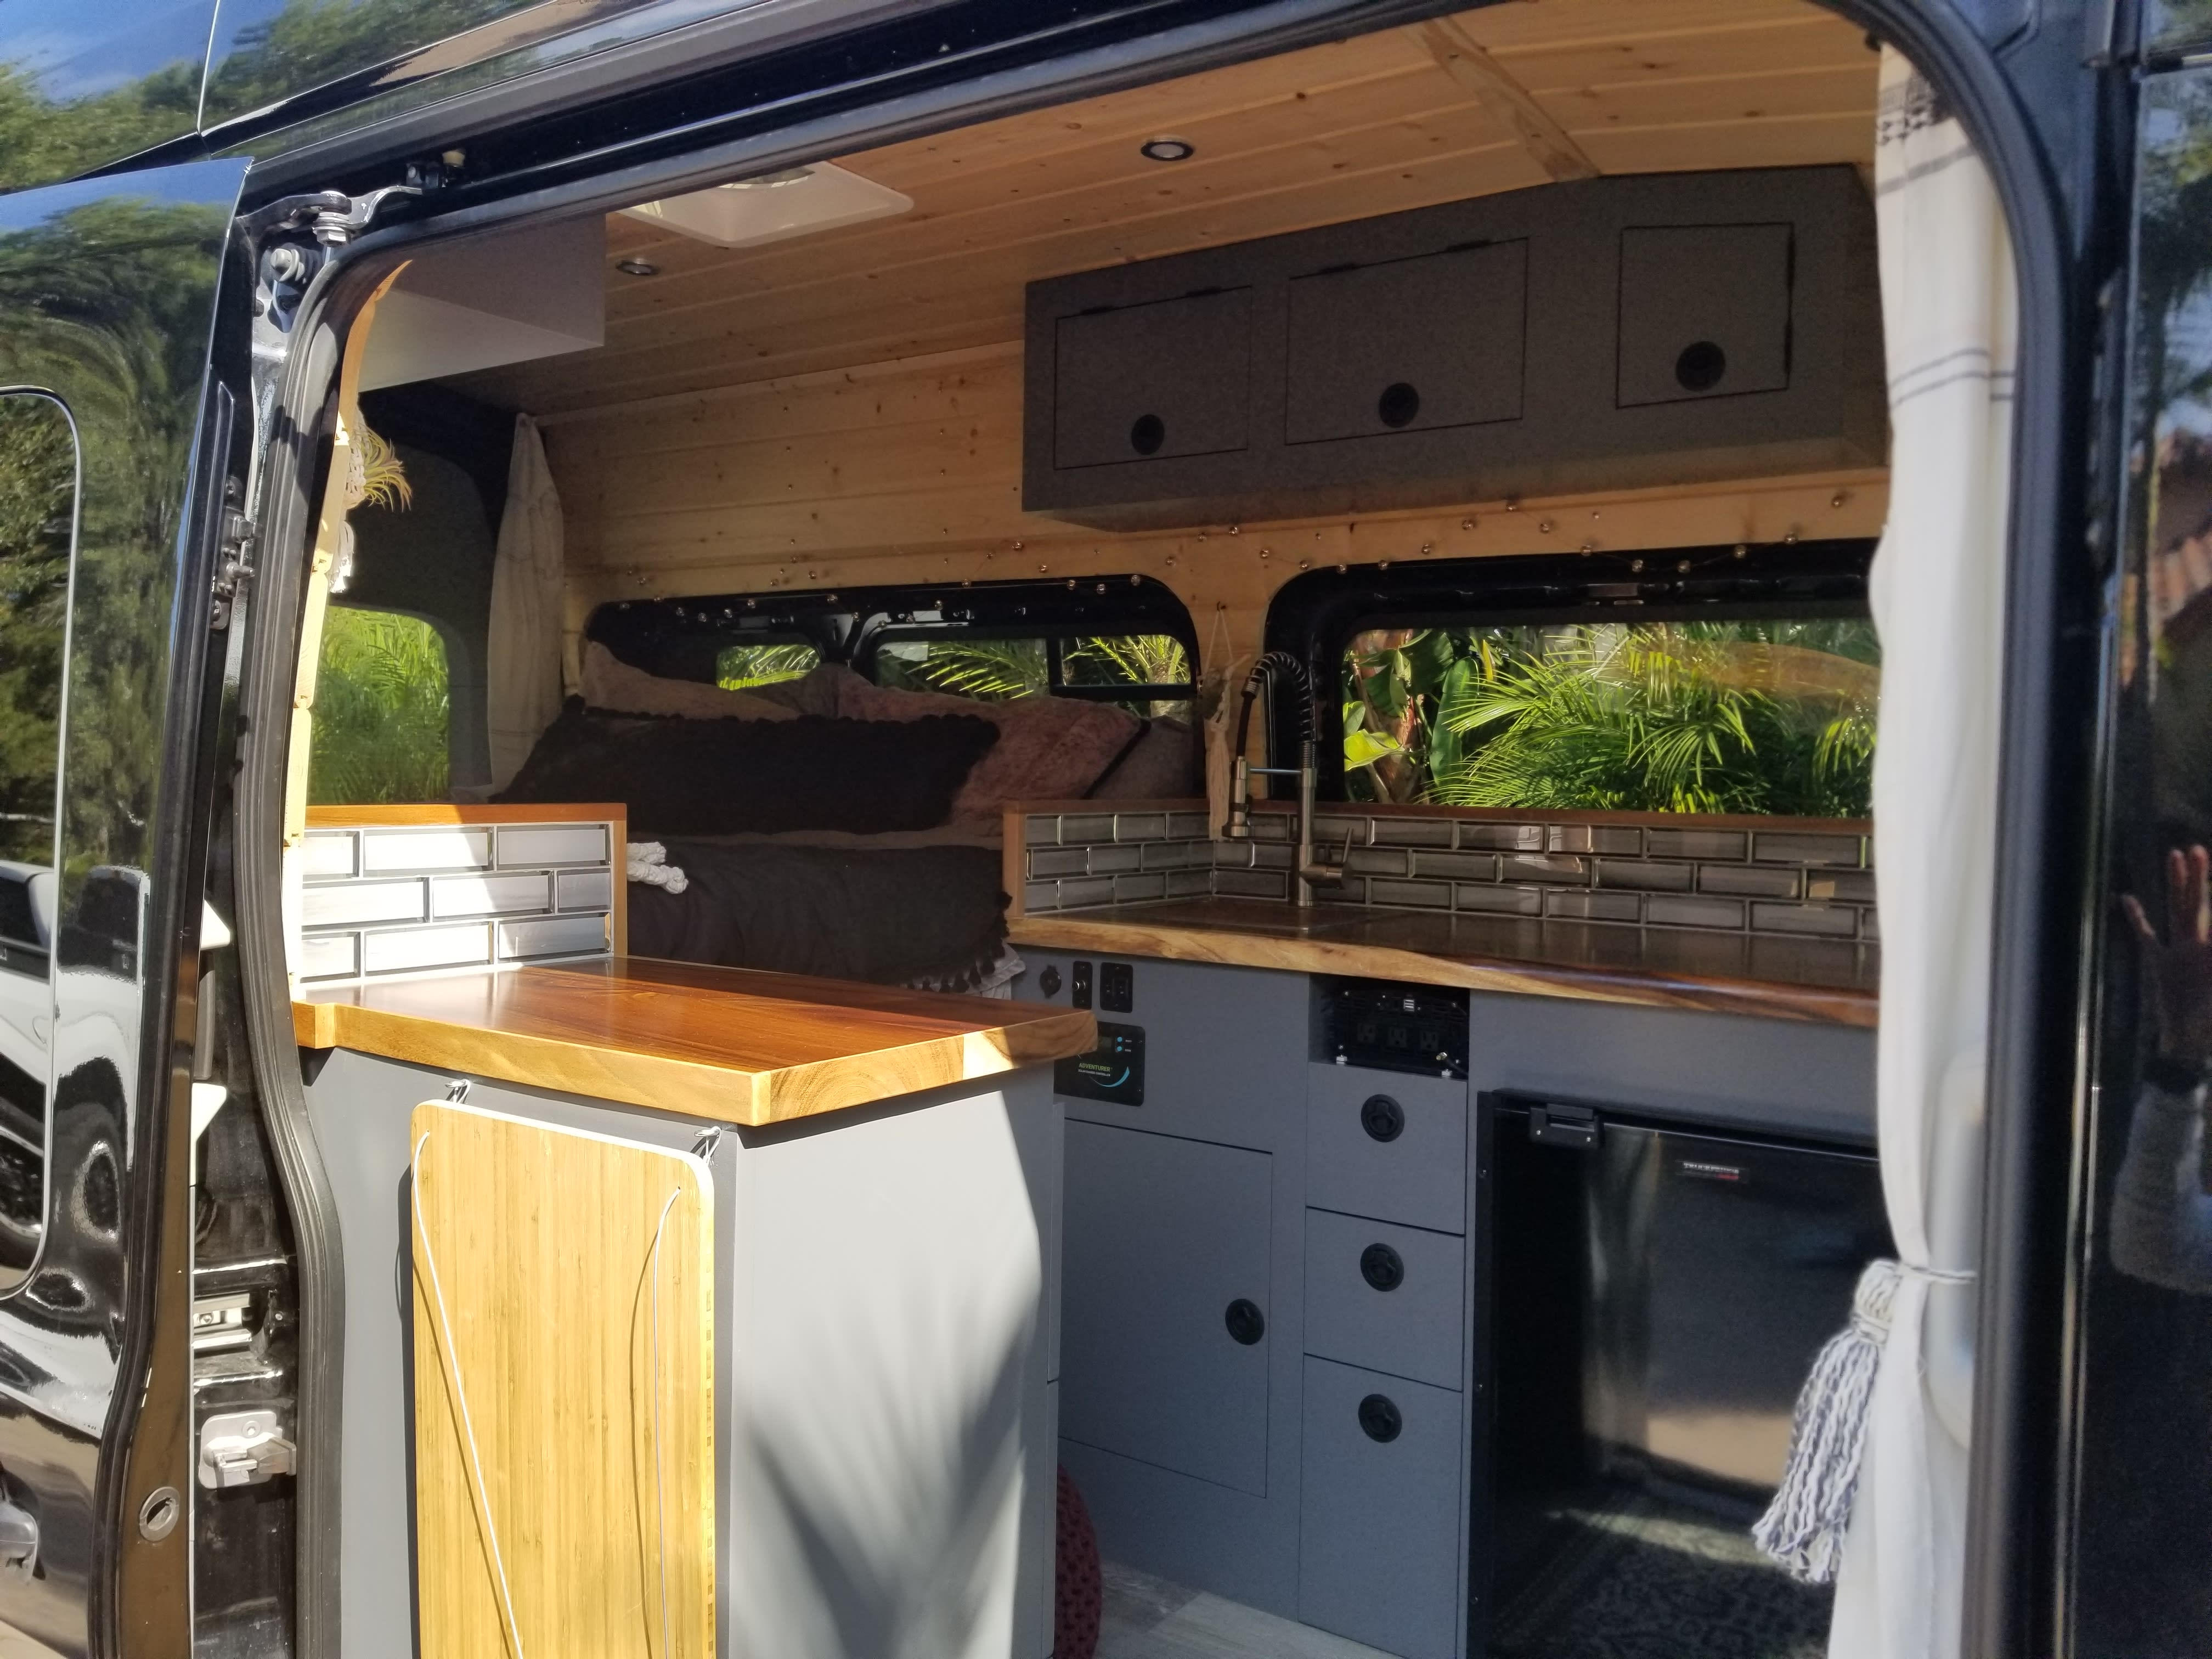 Lots of space for meal prep!. Ford Transit 2019